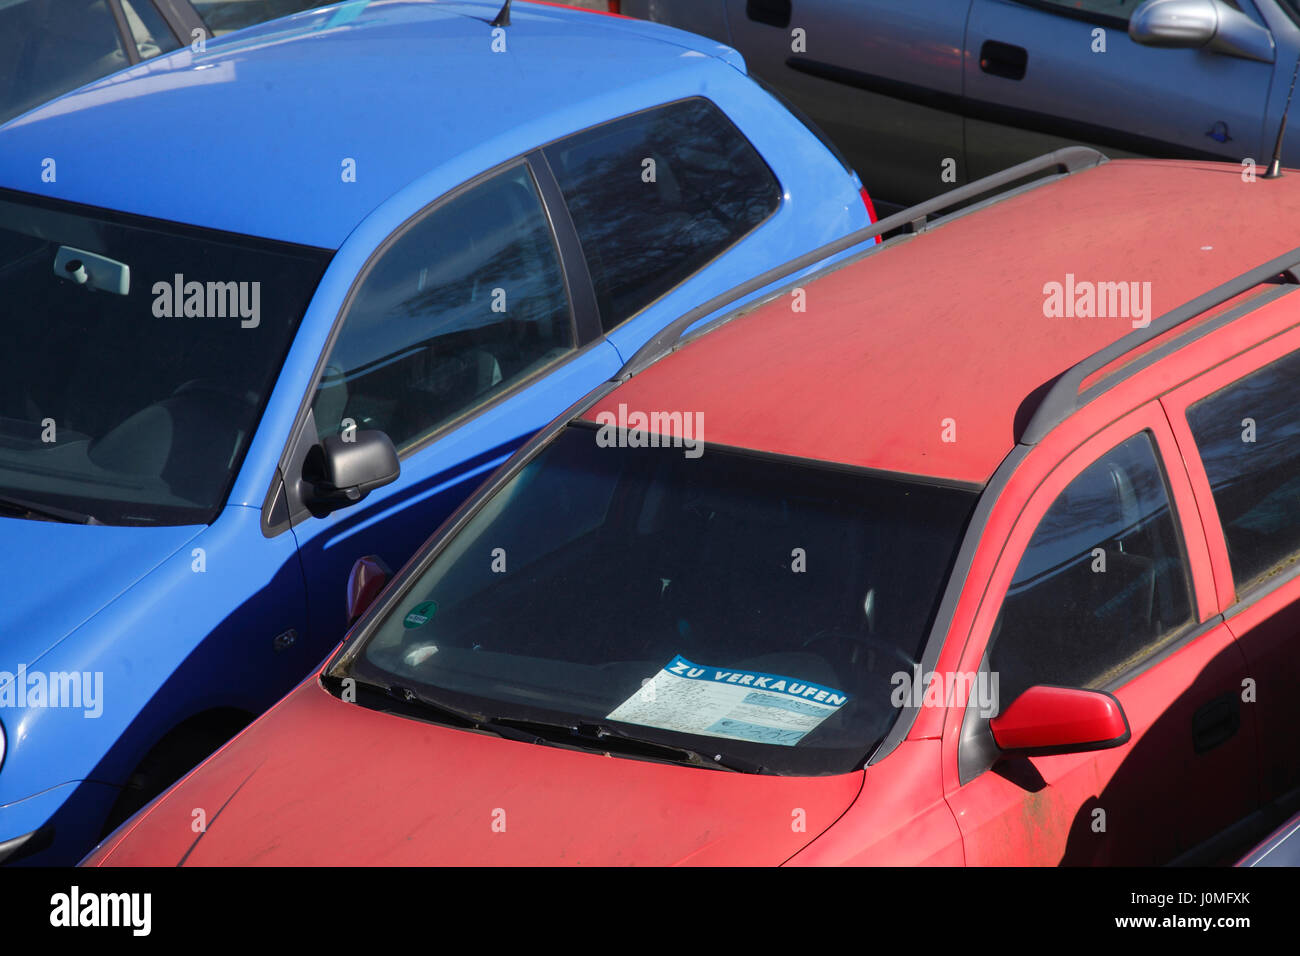 old used cars Stock Photo, Royalty Free Image: 138134491 - Alamy